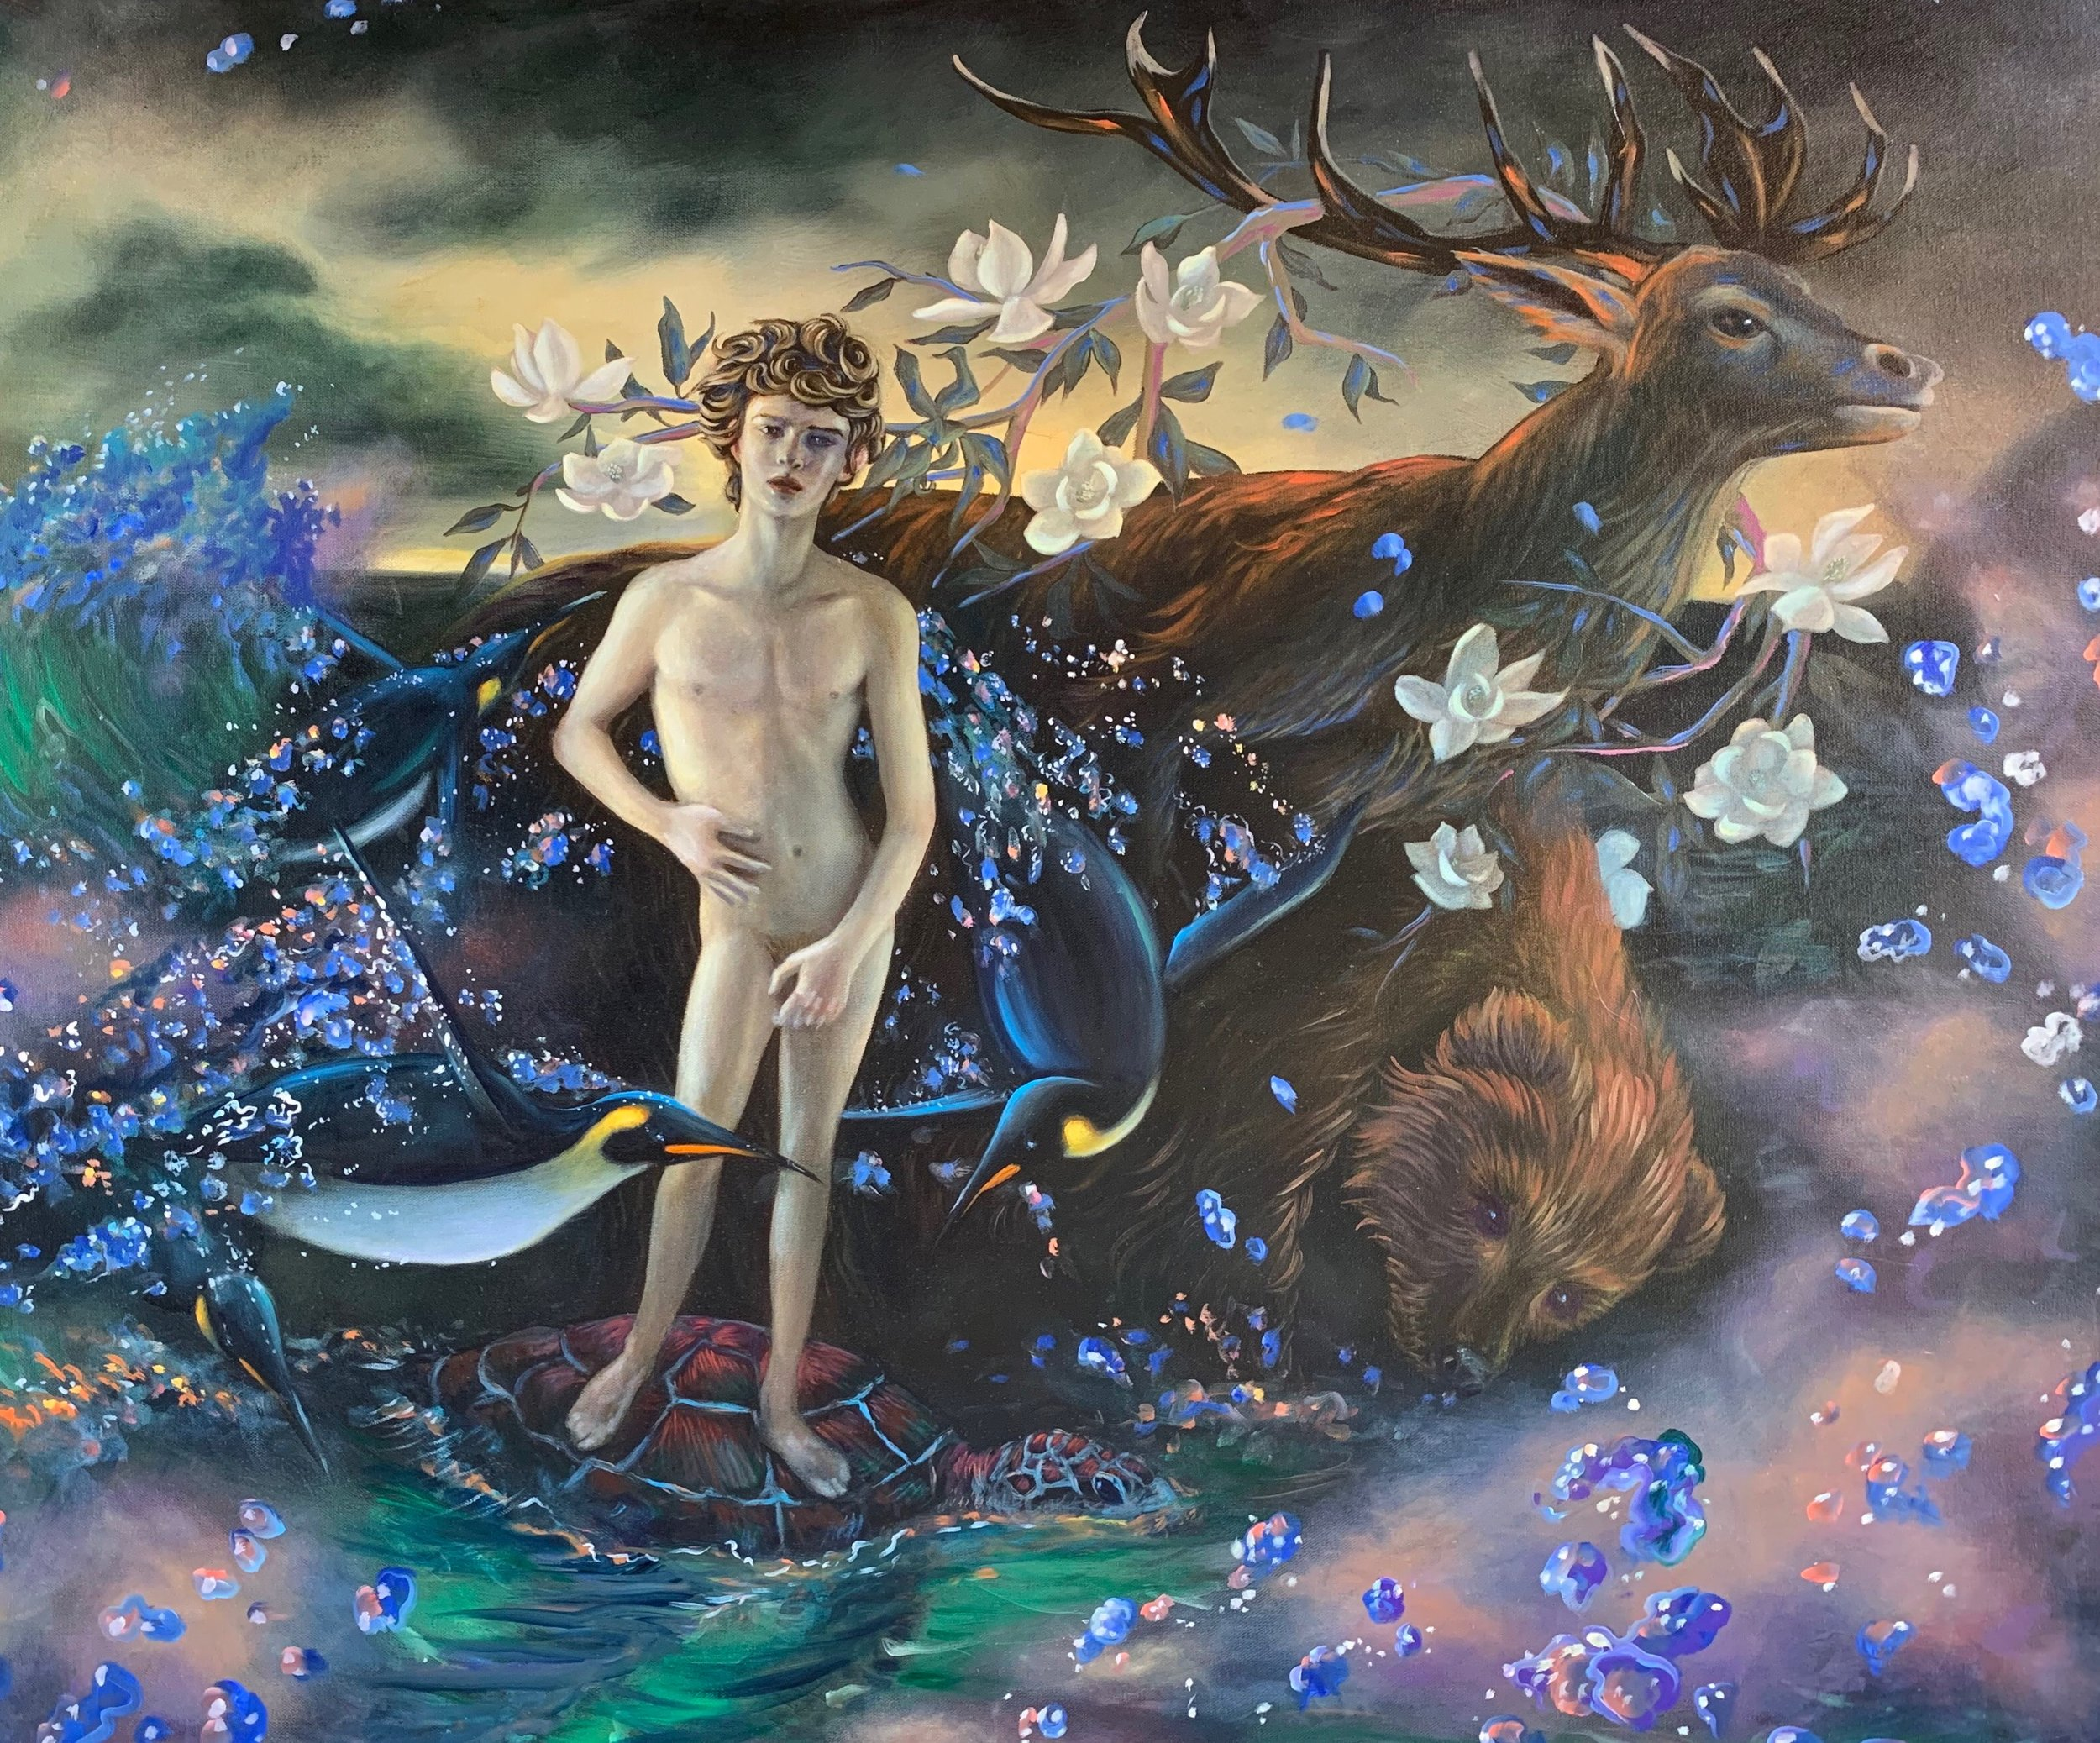 Pacific Antinous. Oil on canvas, 36 x 48 in. 2019